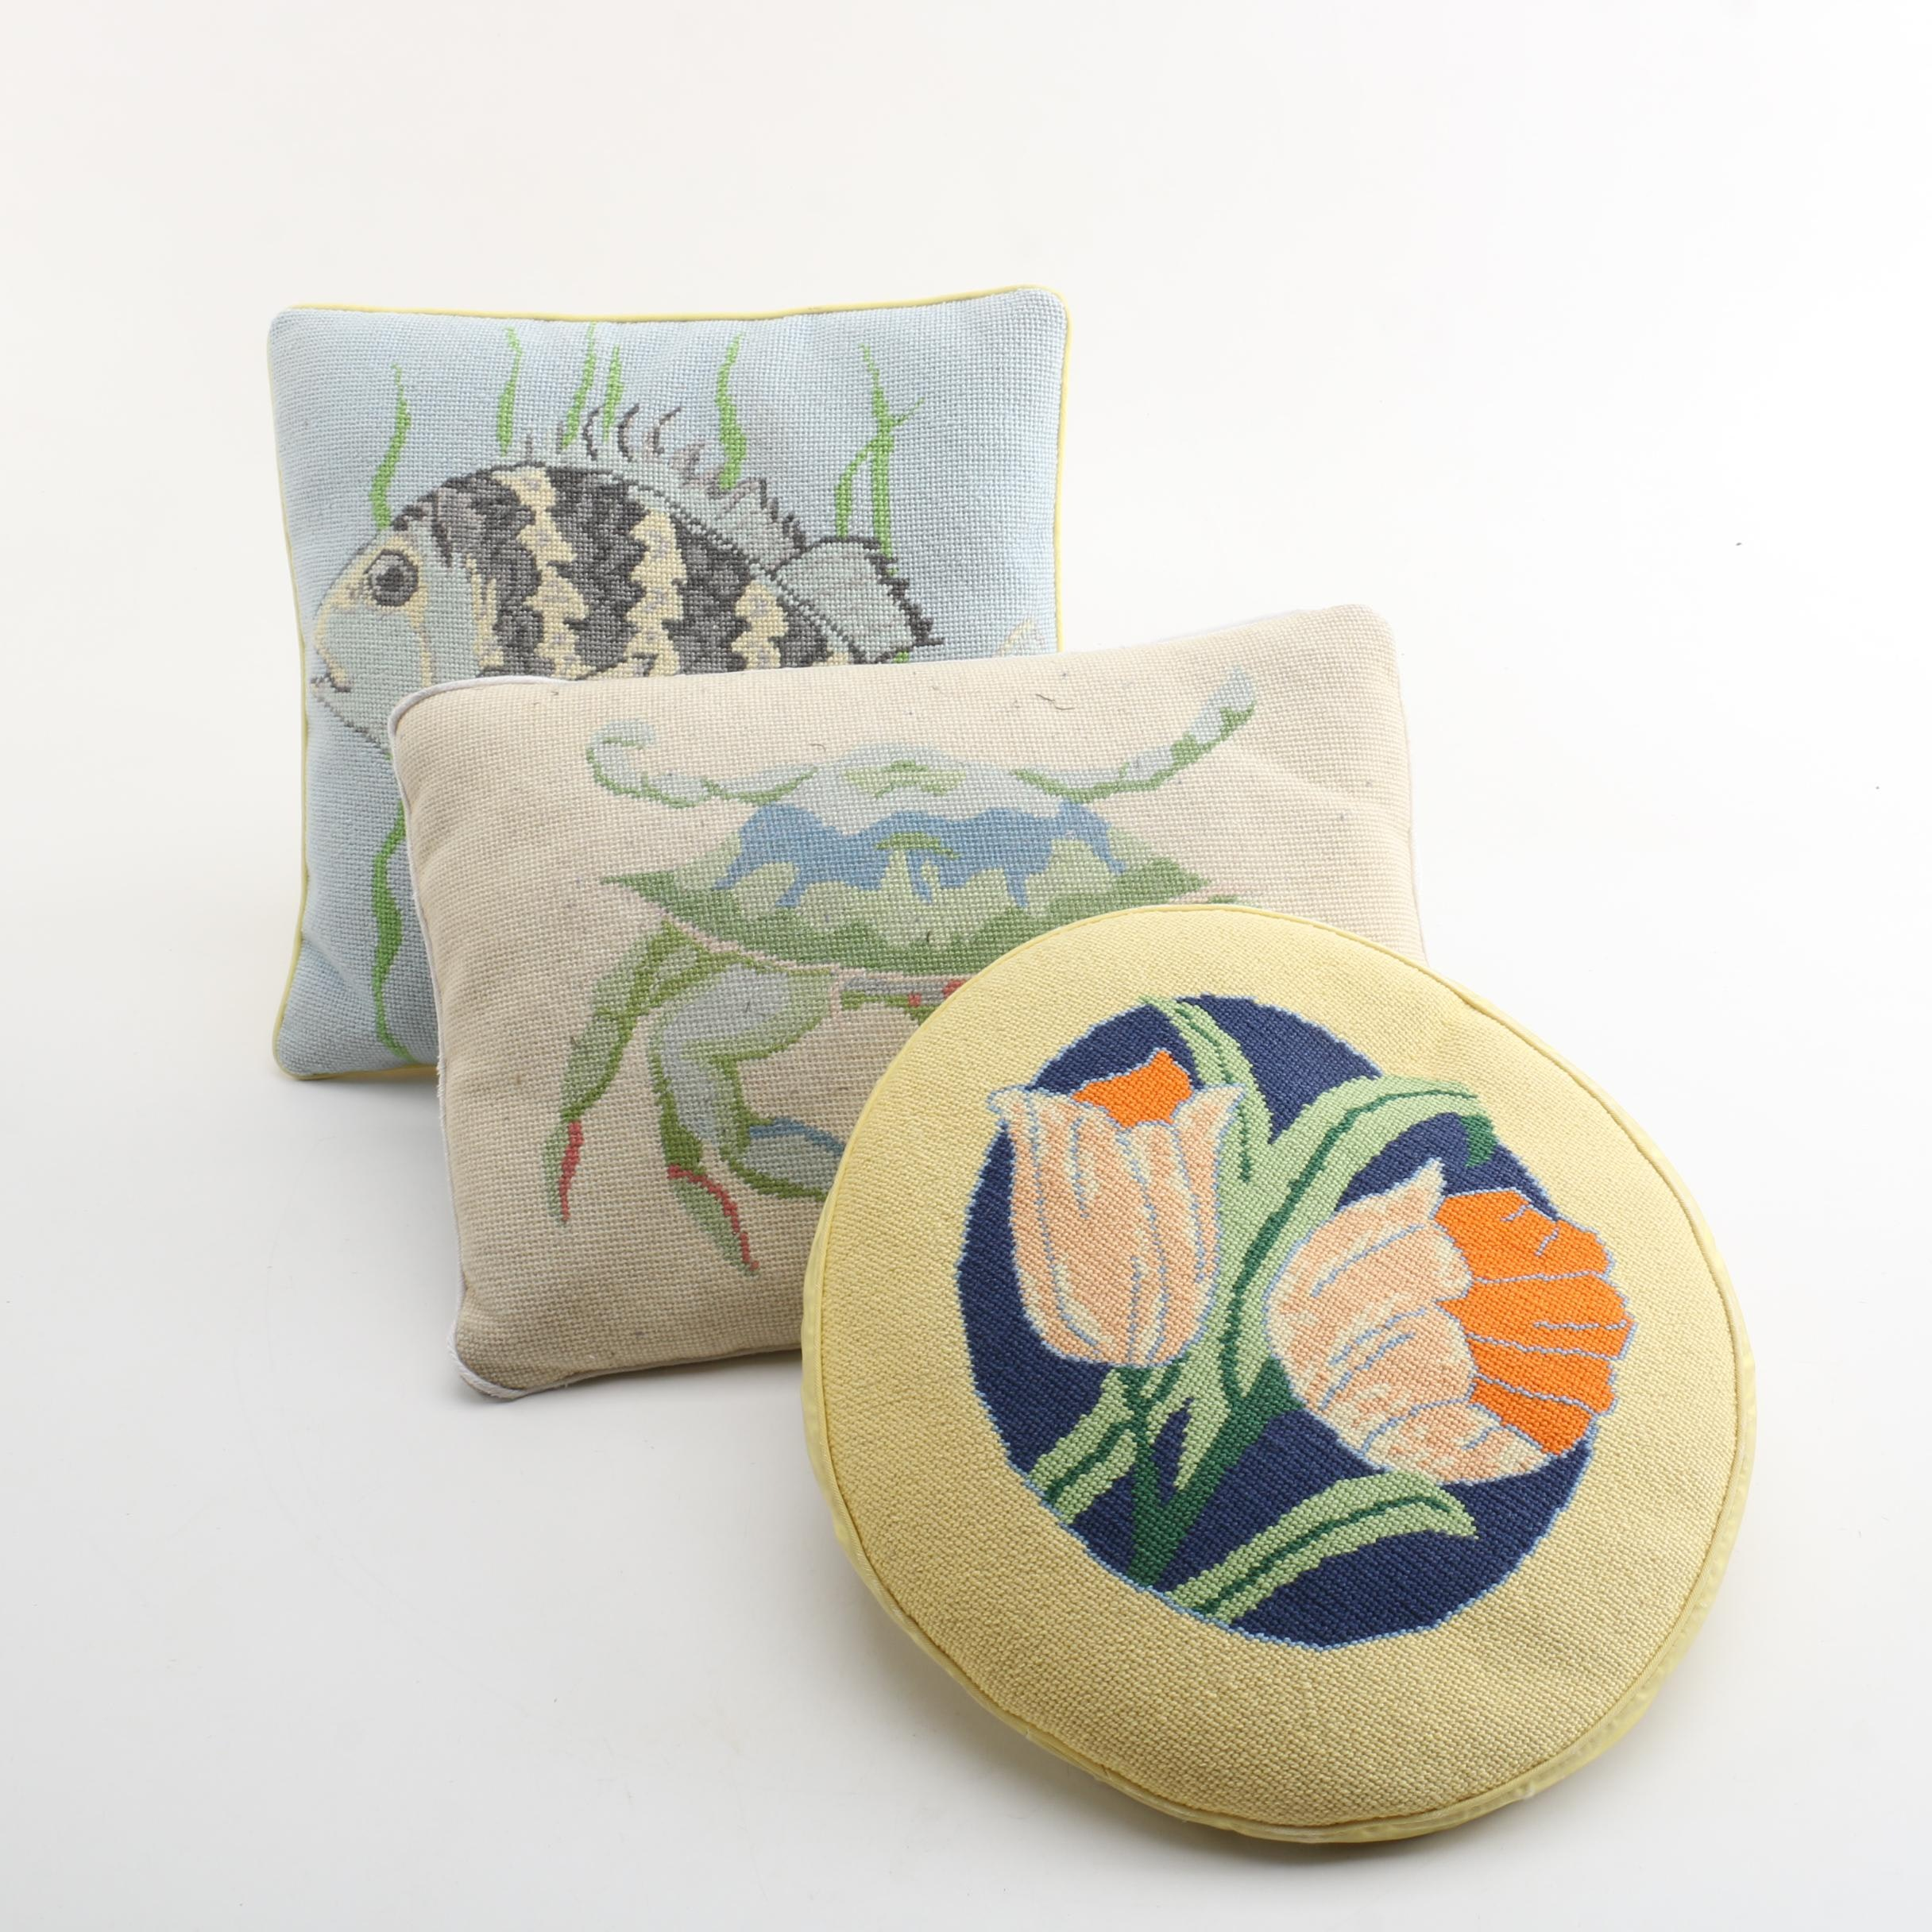 Vintage Needlepoint Accent Pillows with Nature Motif